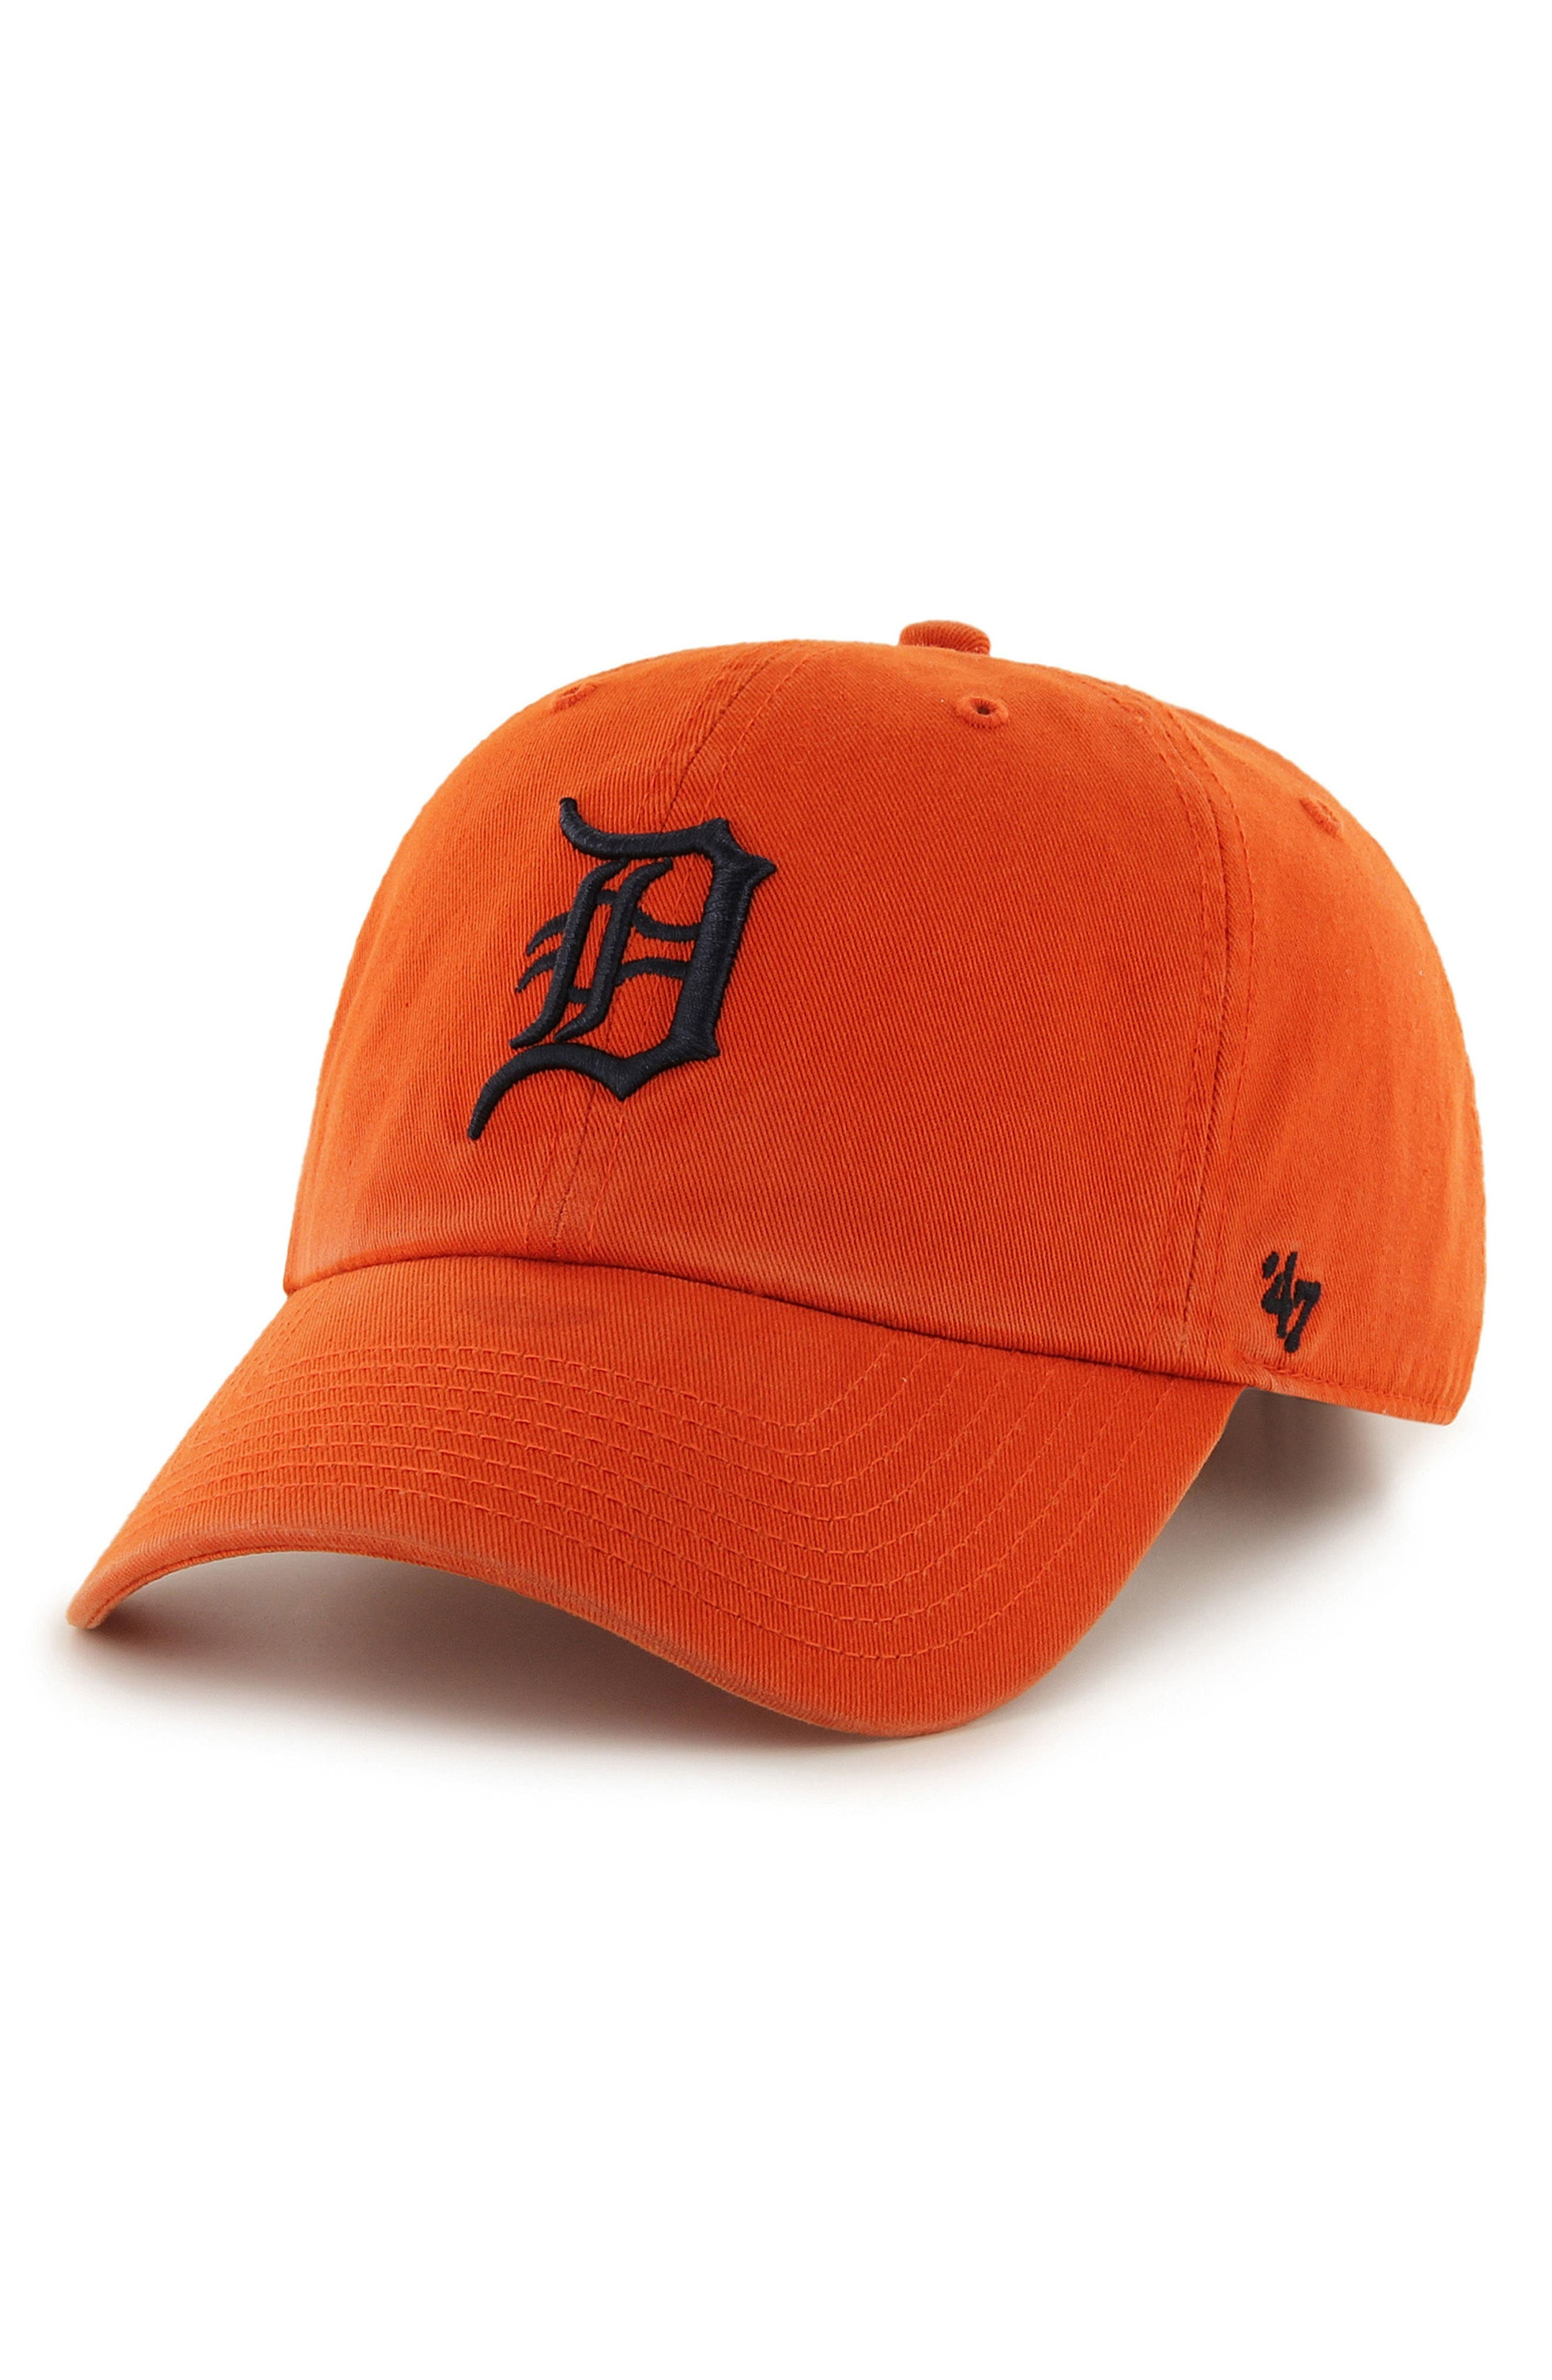 MLB Ball Cap,                             Main thumbnail 1, color,                             San Francisco Giants